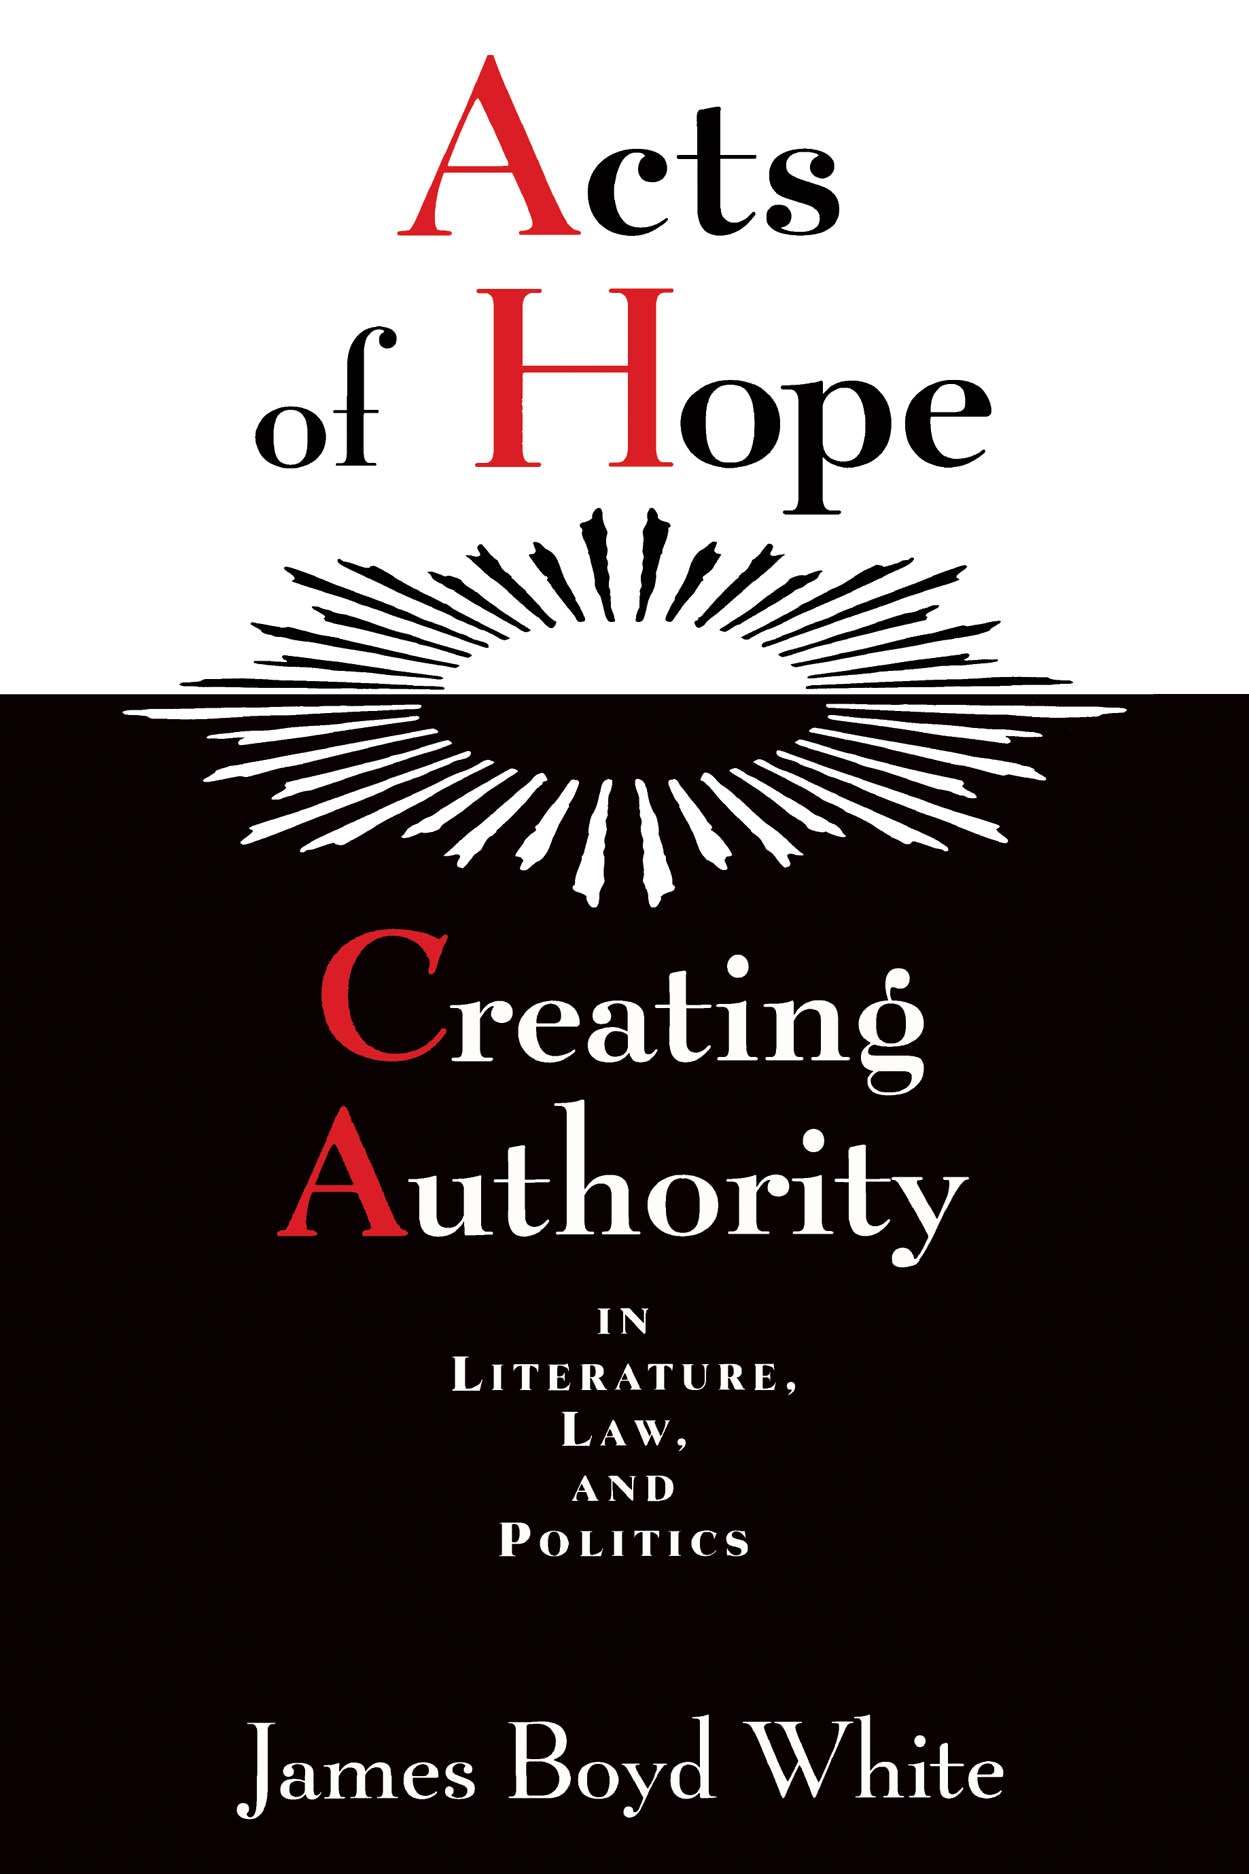 Acts of Hope: Creating Authority in Literature, Law, and Politics